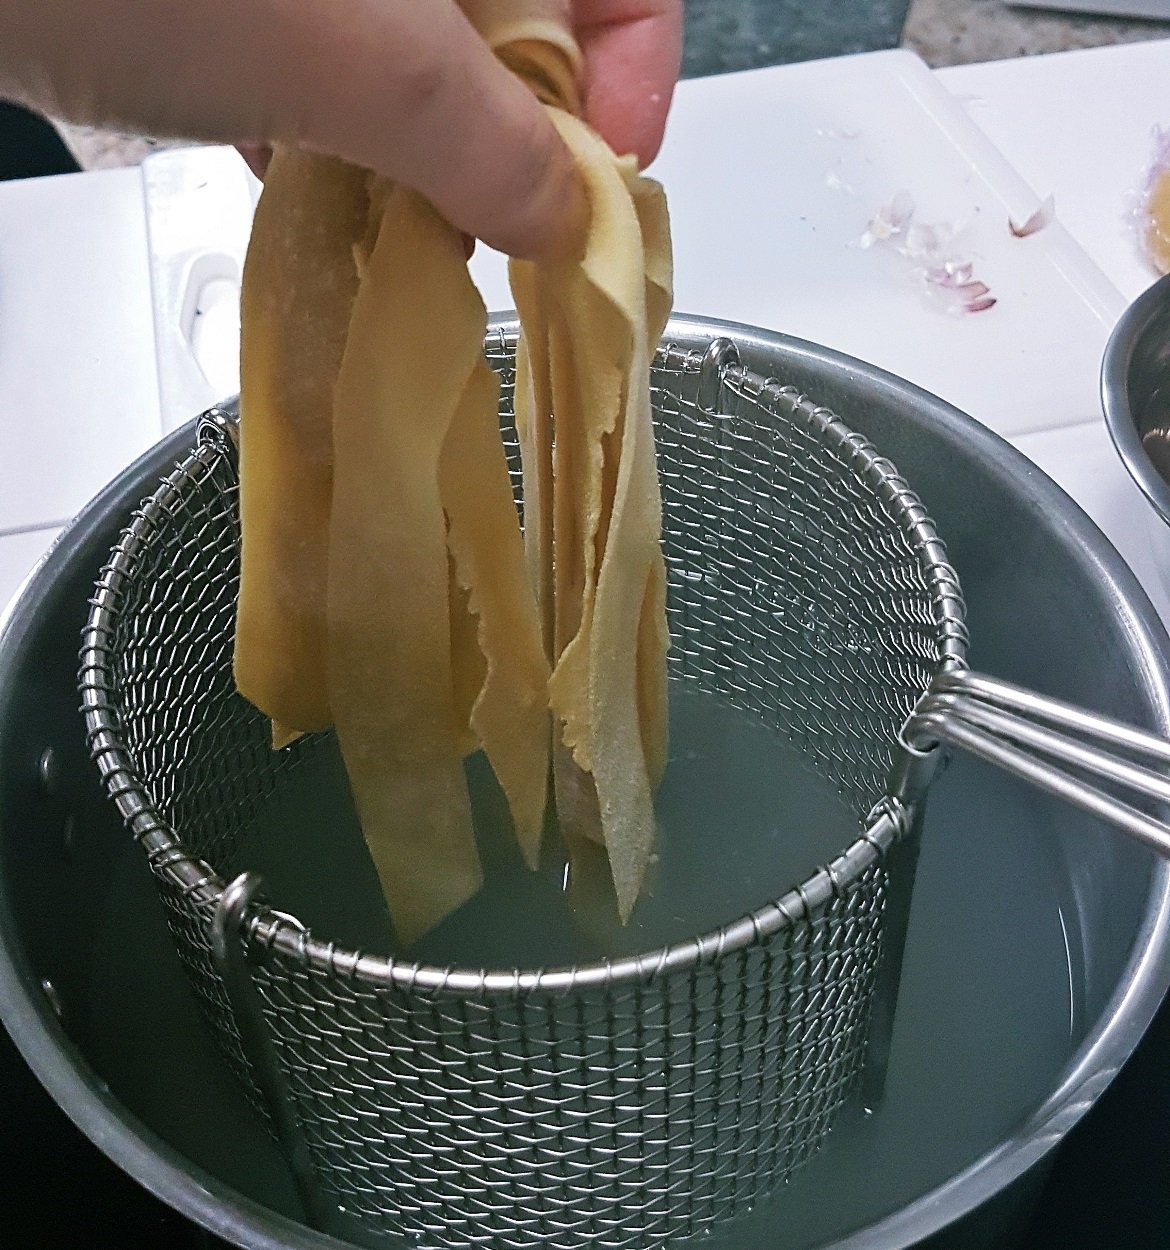 Cooking fresh tagliatelle - Leeds Cookery School review by BeckyBecky Blogs